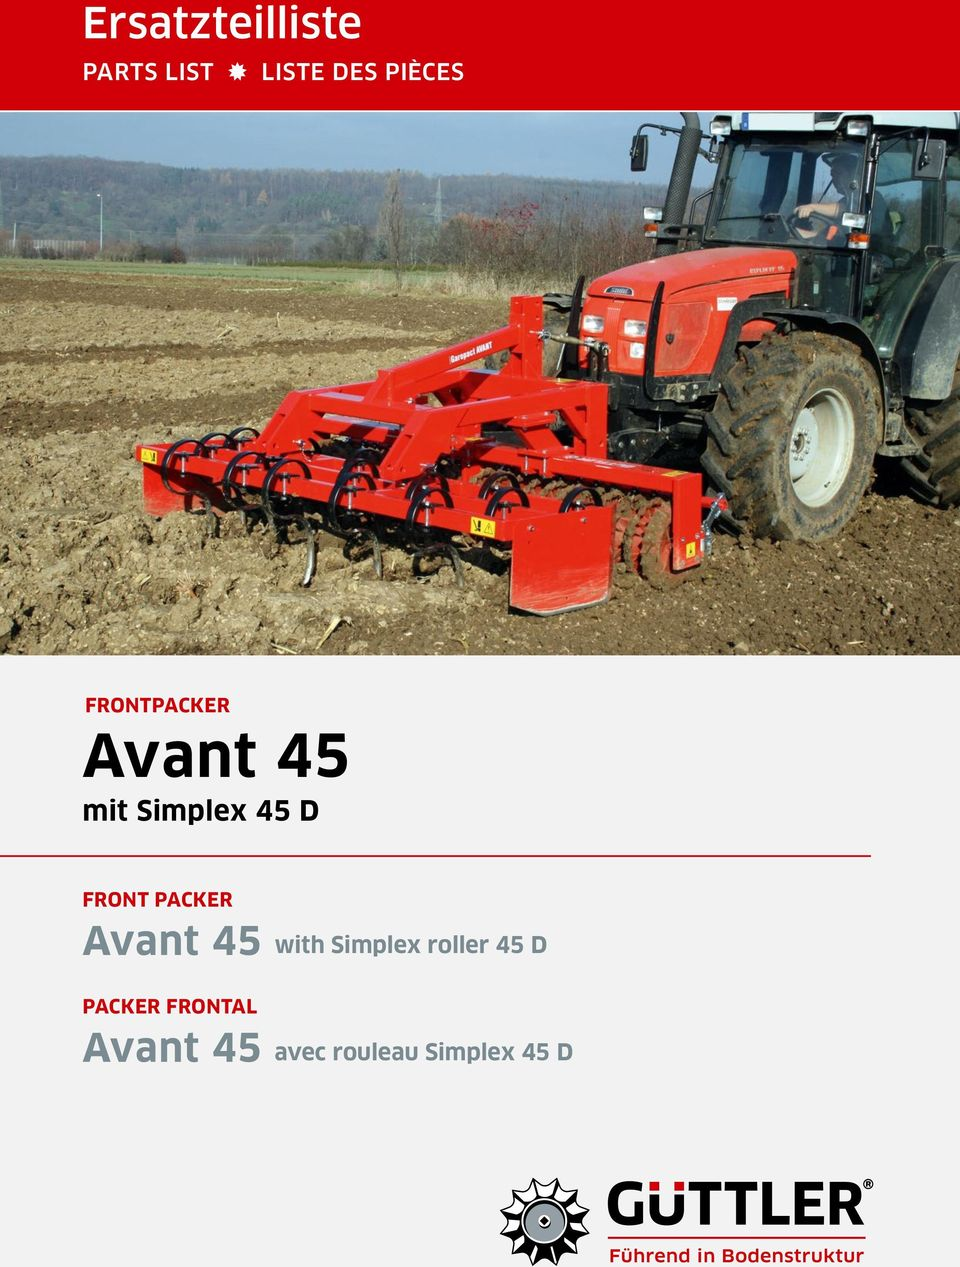 PACKER Avant 45 with Simplex roller 45 D